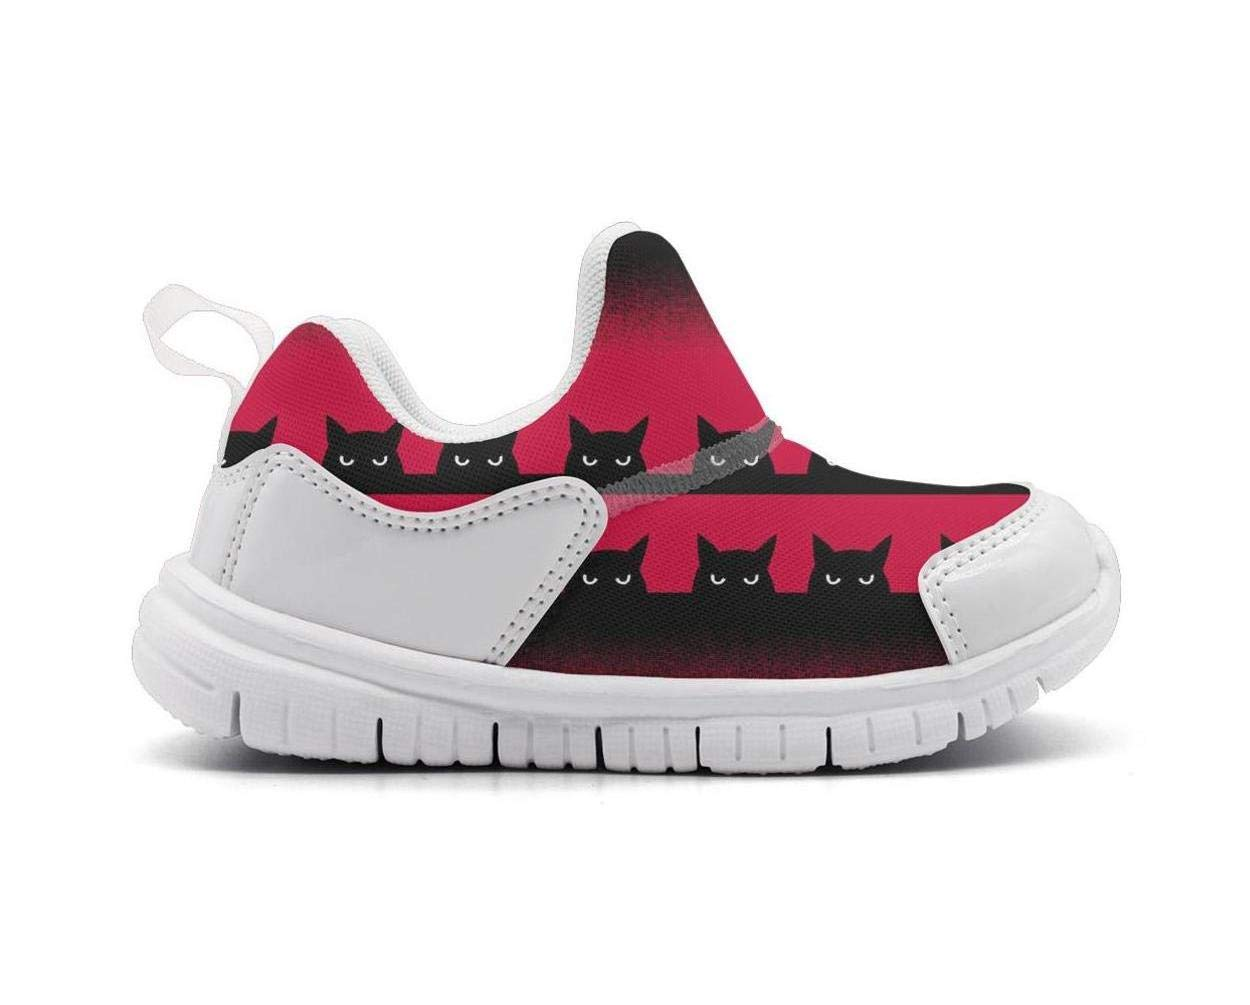 ONEYUAN Children Black cat Watching You Kid Casual Lightweight Sport Shoes Sneakers Running Shoes